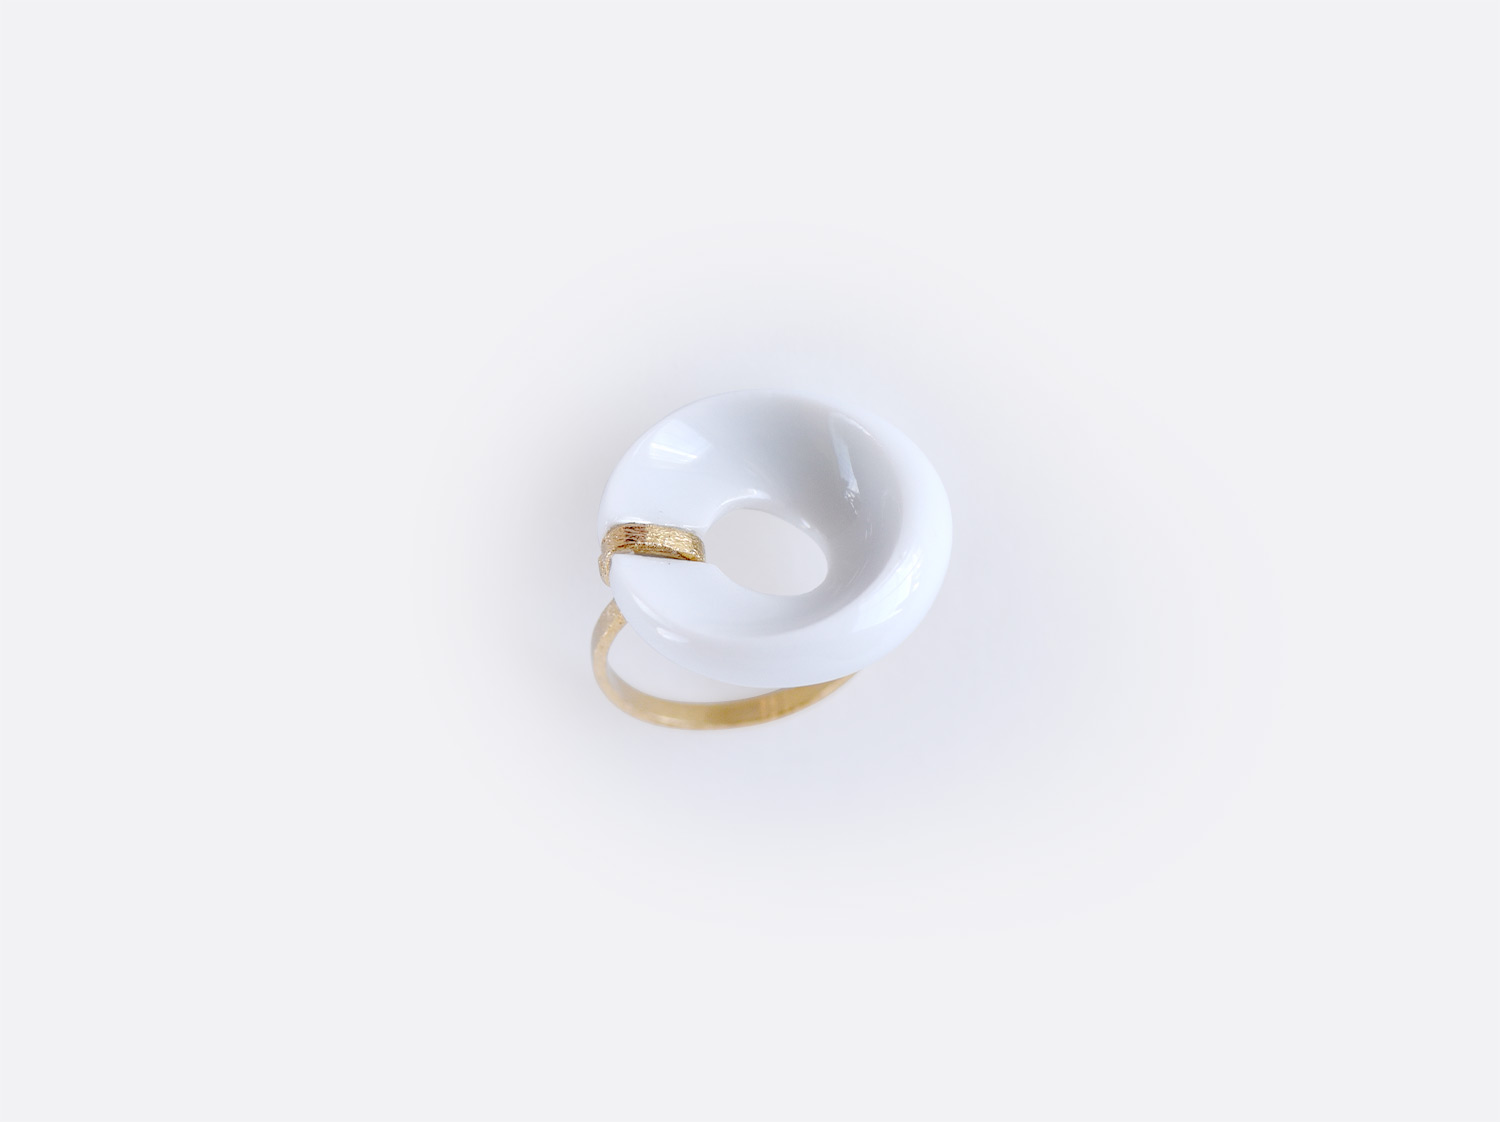 China Alba blanc Ring of the collection ALBA BLANC | Bernardaud